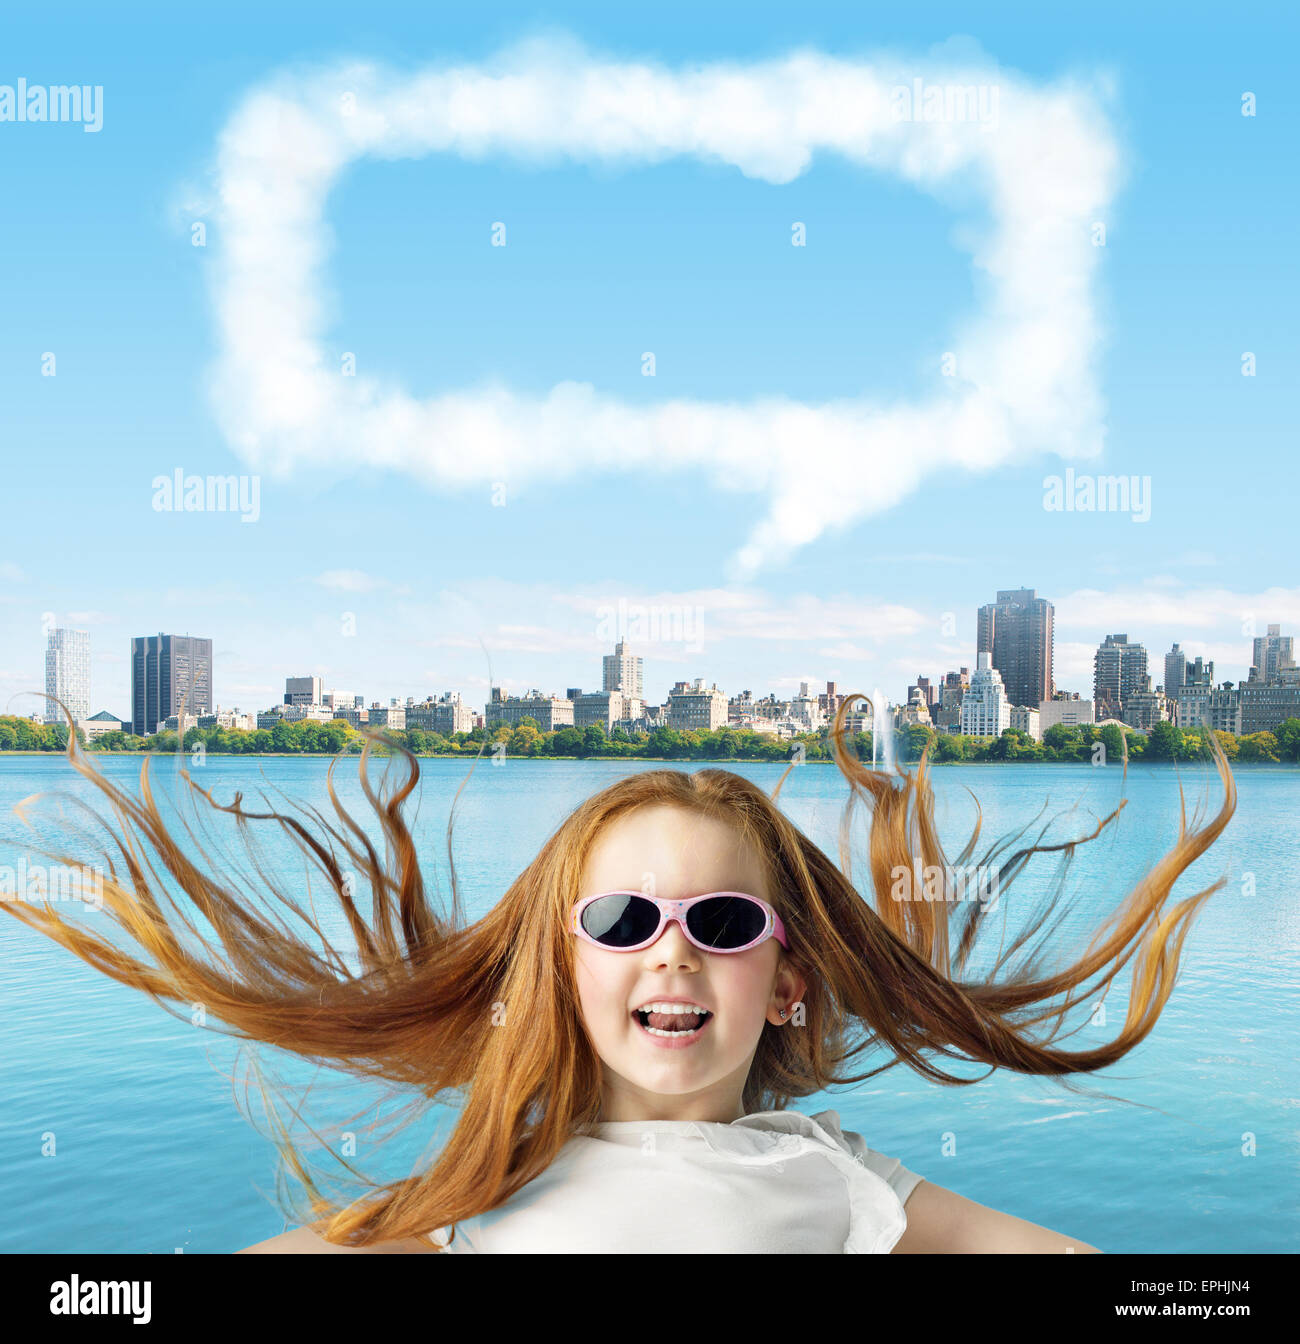 Adorable girl with a sign of dialogue - Stock Image